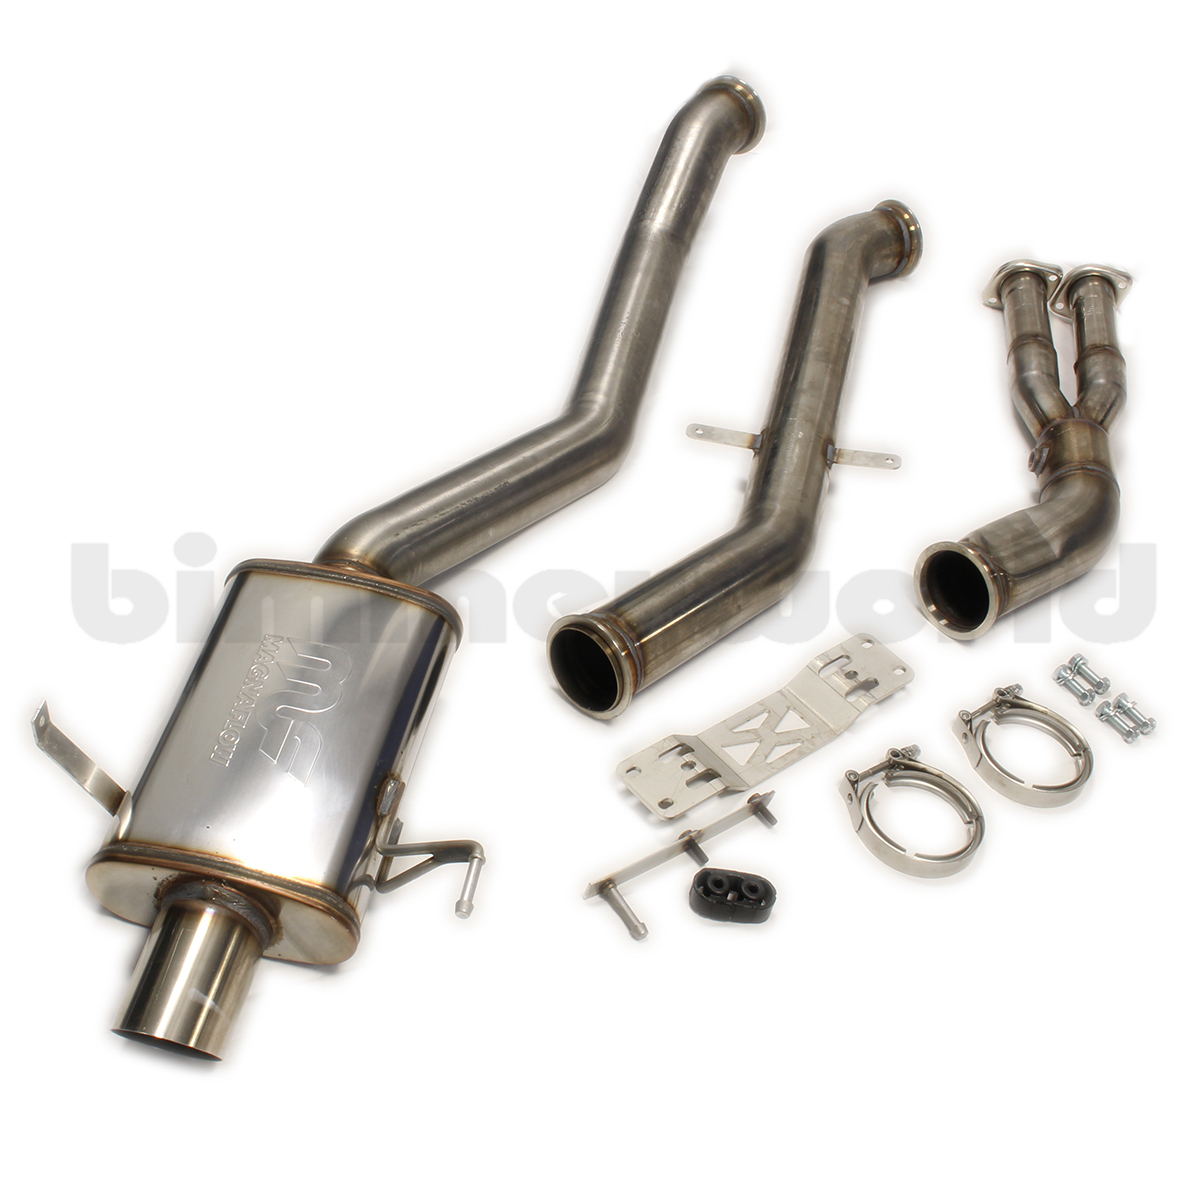 E46 M3 Bimmerworld Race Exhaust Bmw Wiper Motor Replacement Repalcement Parts And Diagram Kit By Magnaflow Straight Pipe Diffuser Exit